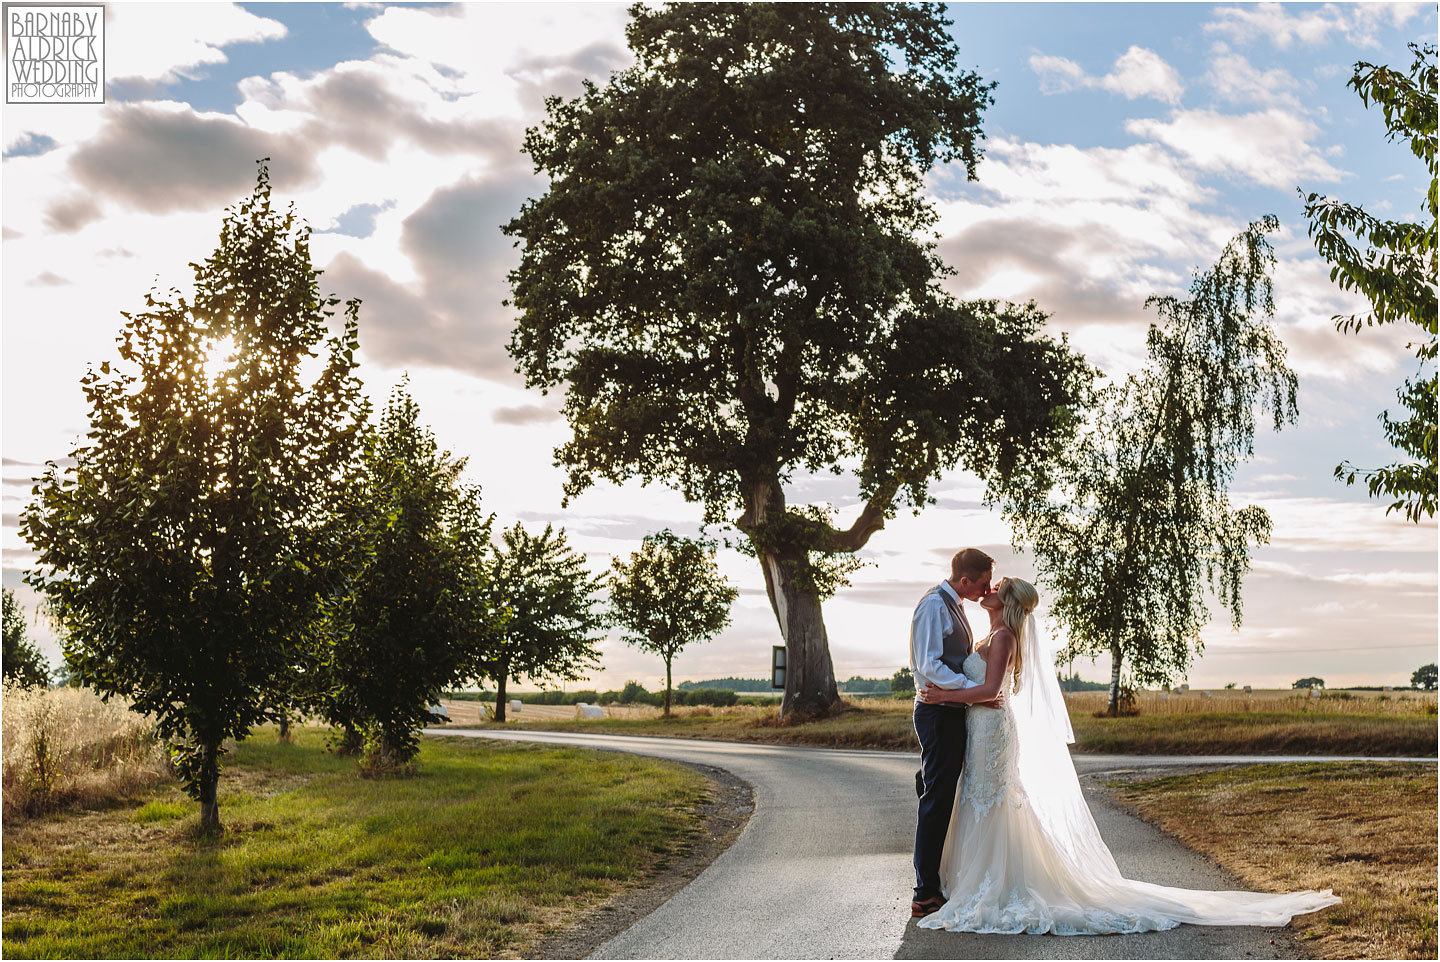 Sunset couple portrait at Priory Cottages Wetherby